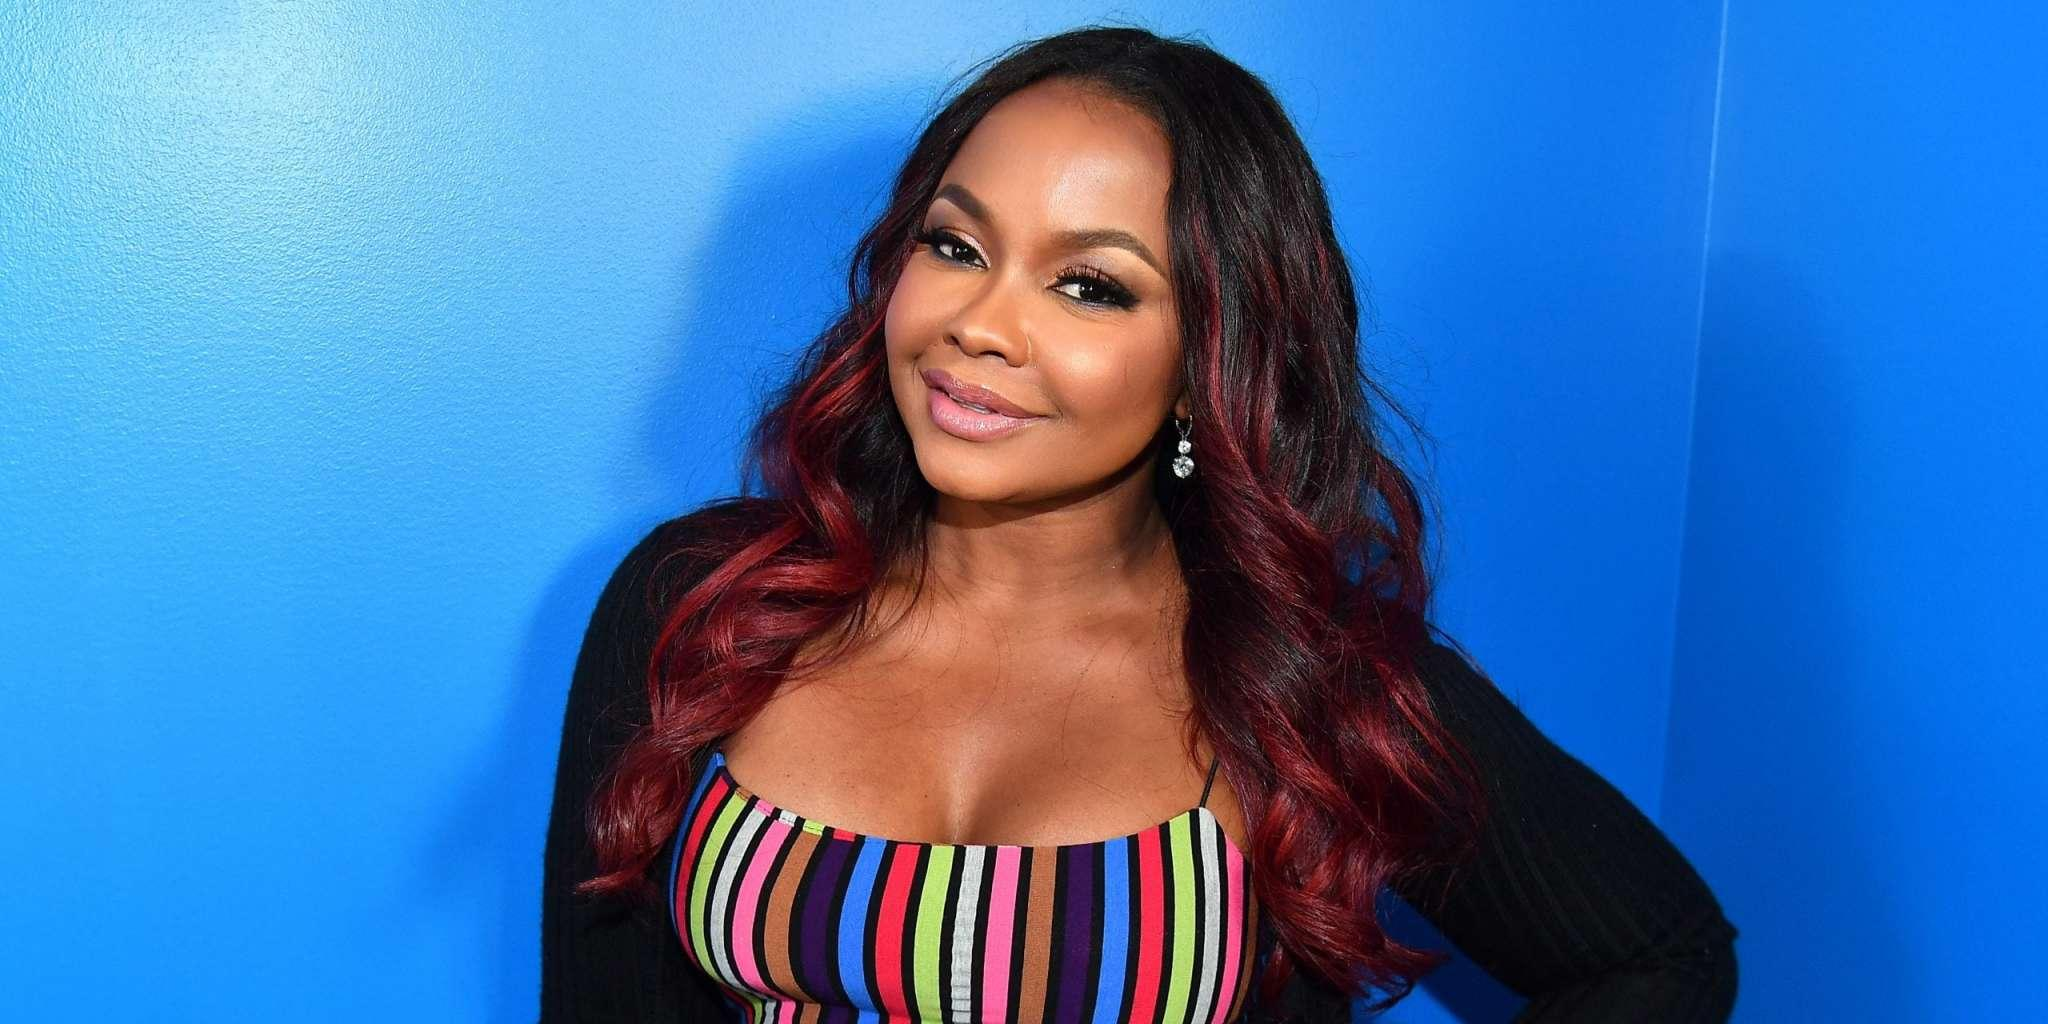 Phaedra Parks Is A Modern Day Poison Ivy In This Dress - Check Out The Post That She Shared On Social Media